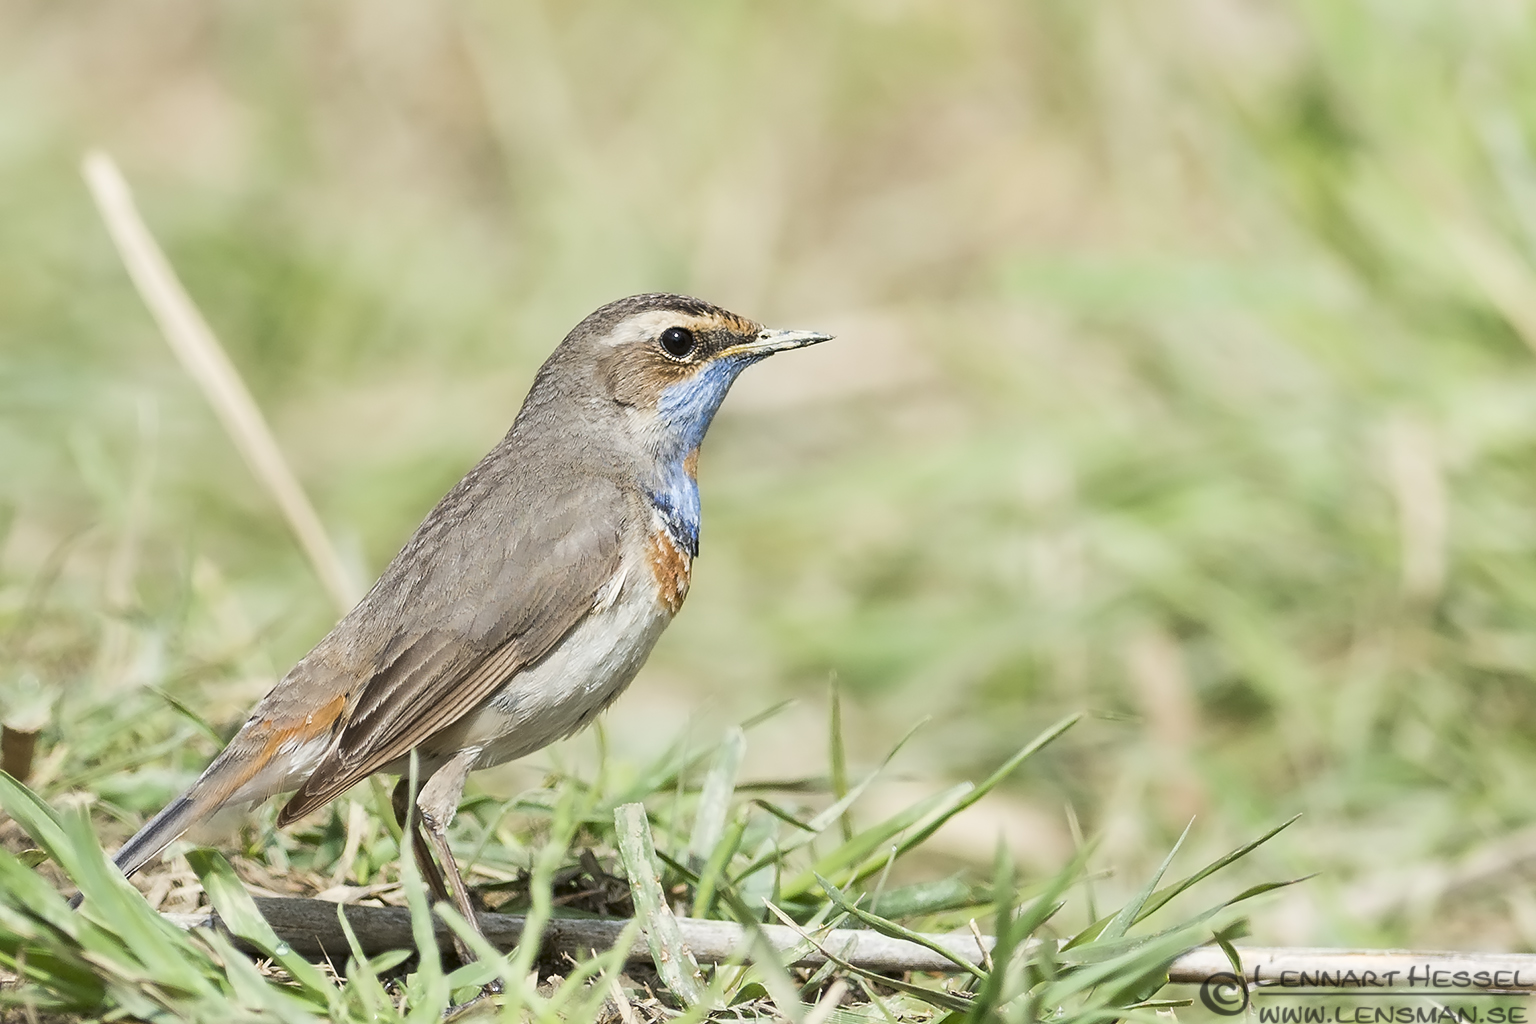 Bluethroat in Romania